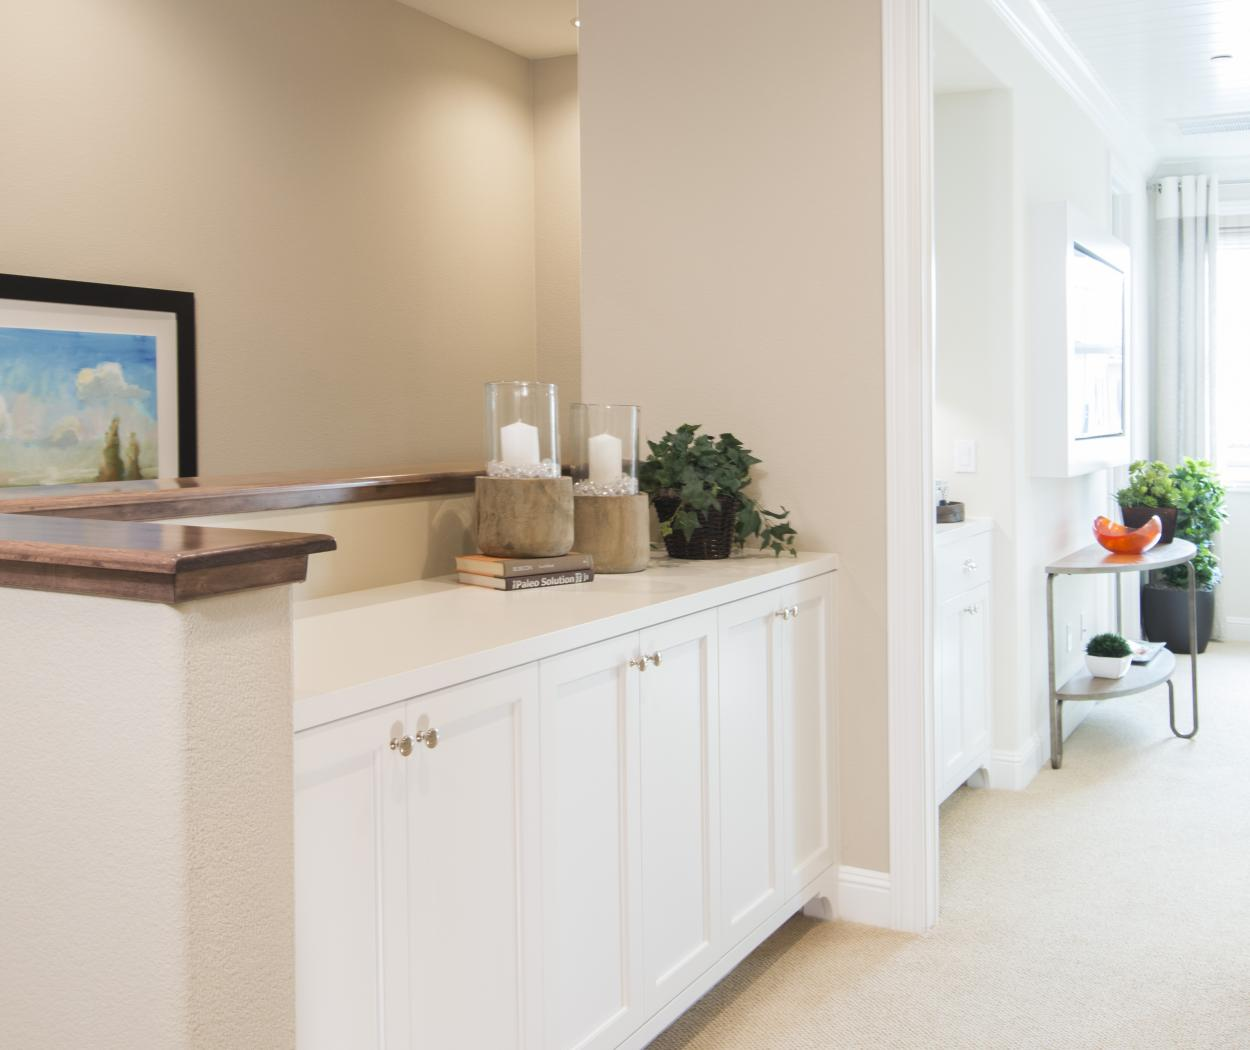 Beautiful Super White Hallway Built-In with Silver Knobs and a White Counter Top